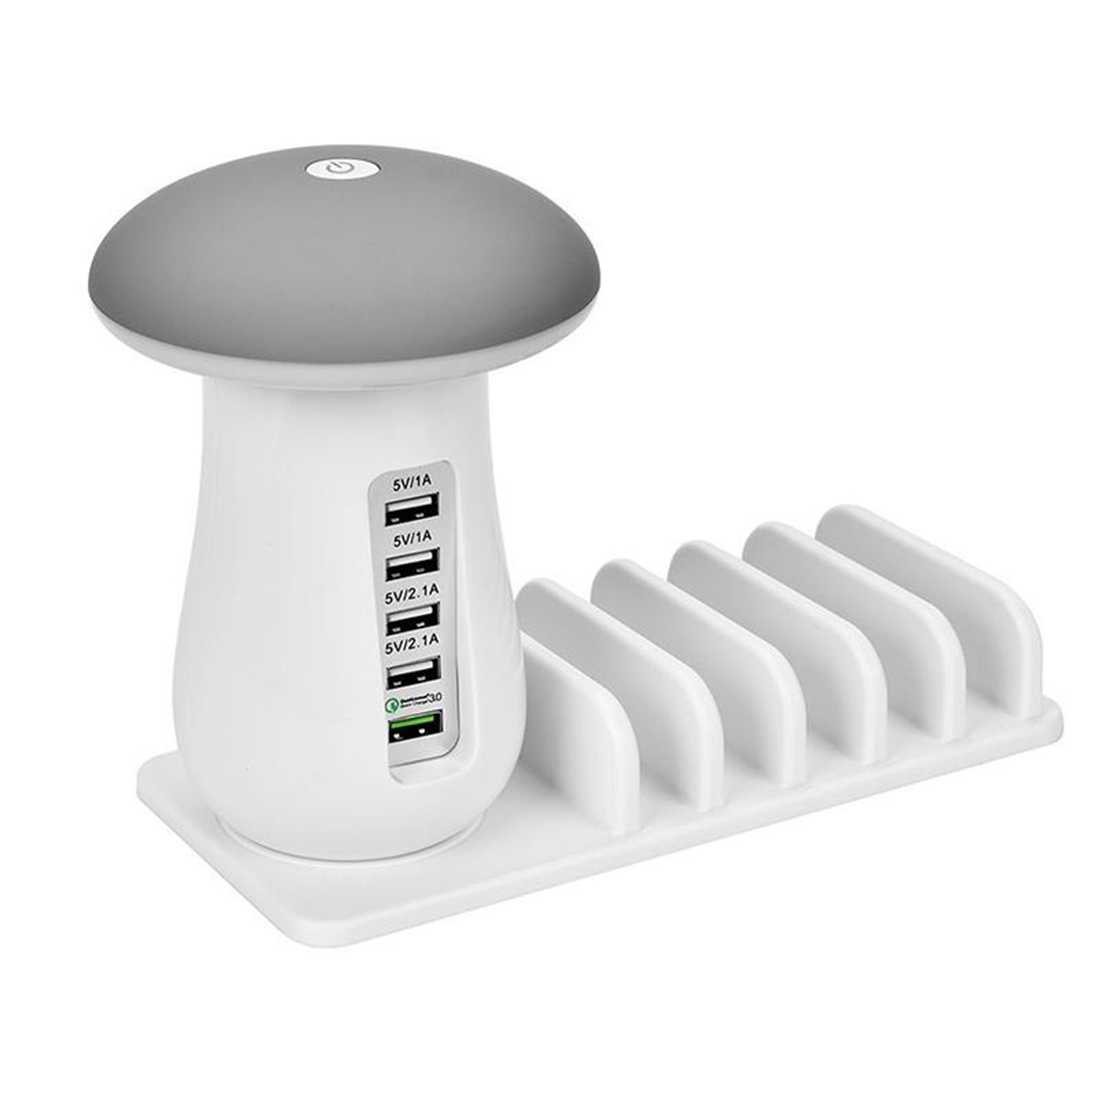 Mushroom LED Night Light 5-Port USB EU Plug Quick Charging Station Universal Desktop Tablet and Smartphone Electrical Socket orico dcap 5u 5 port usb wall charger for tablet and smartphone